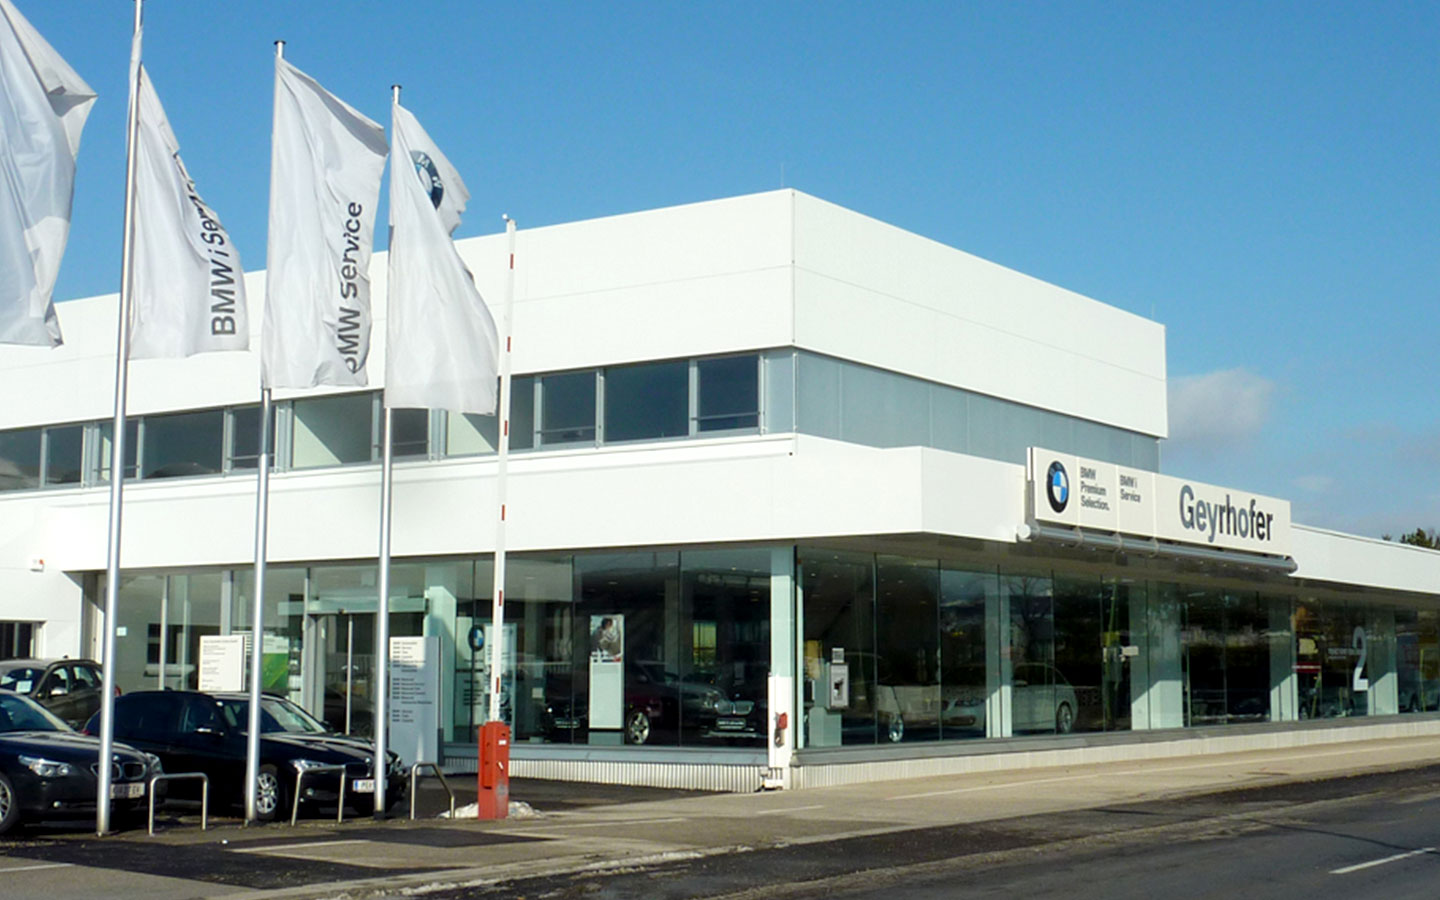 BMW Geyrhofer, Wels